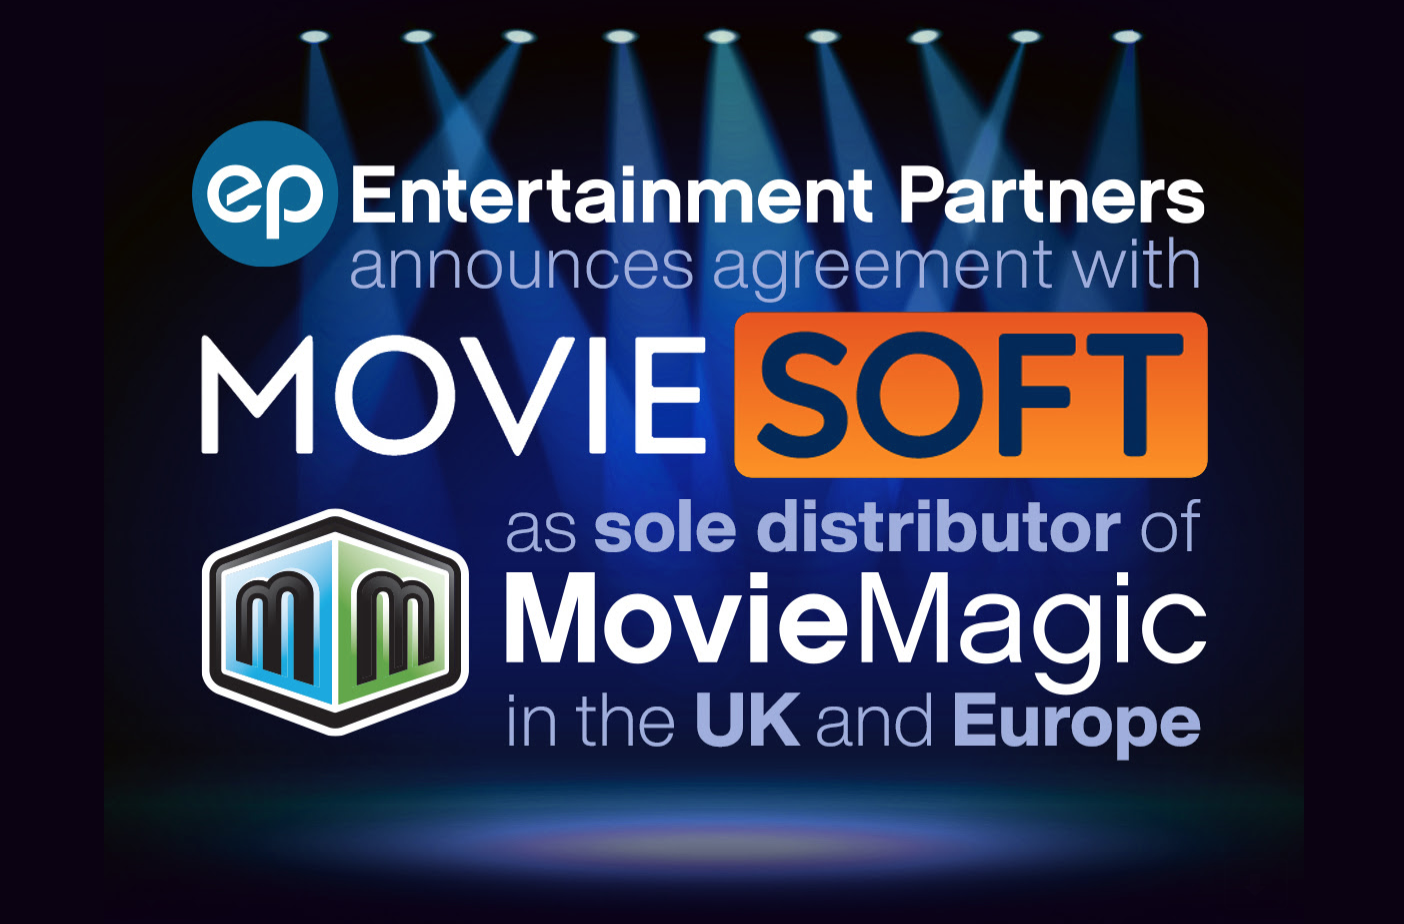 EP and Movie Soft - Movie Magic Distribution in Europe